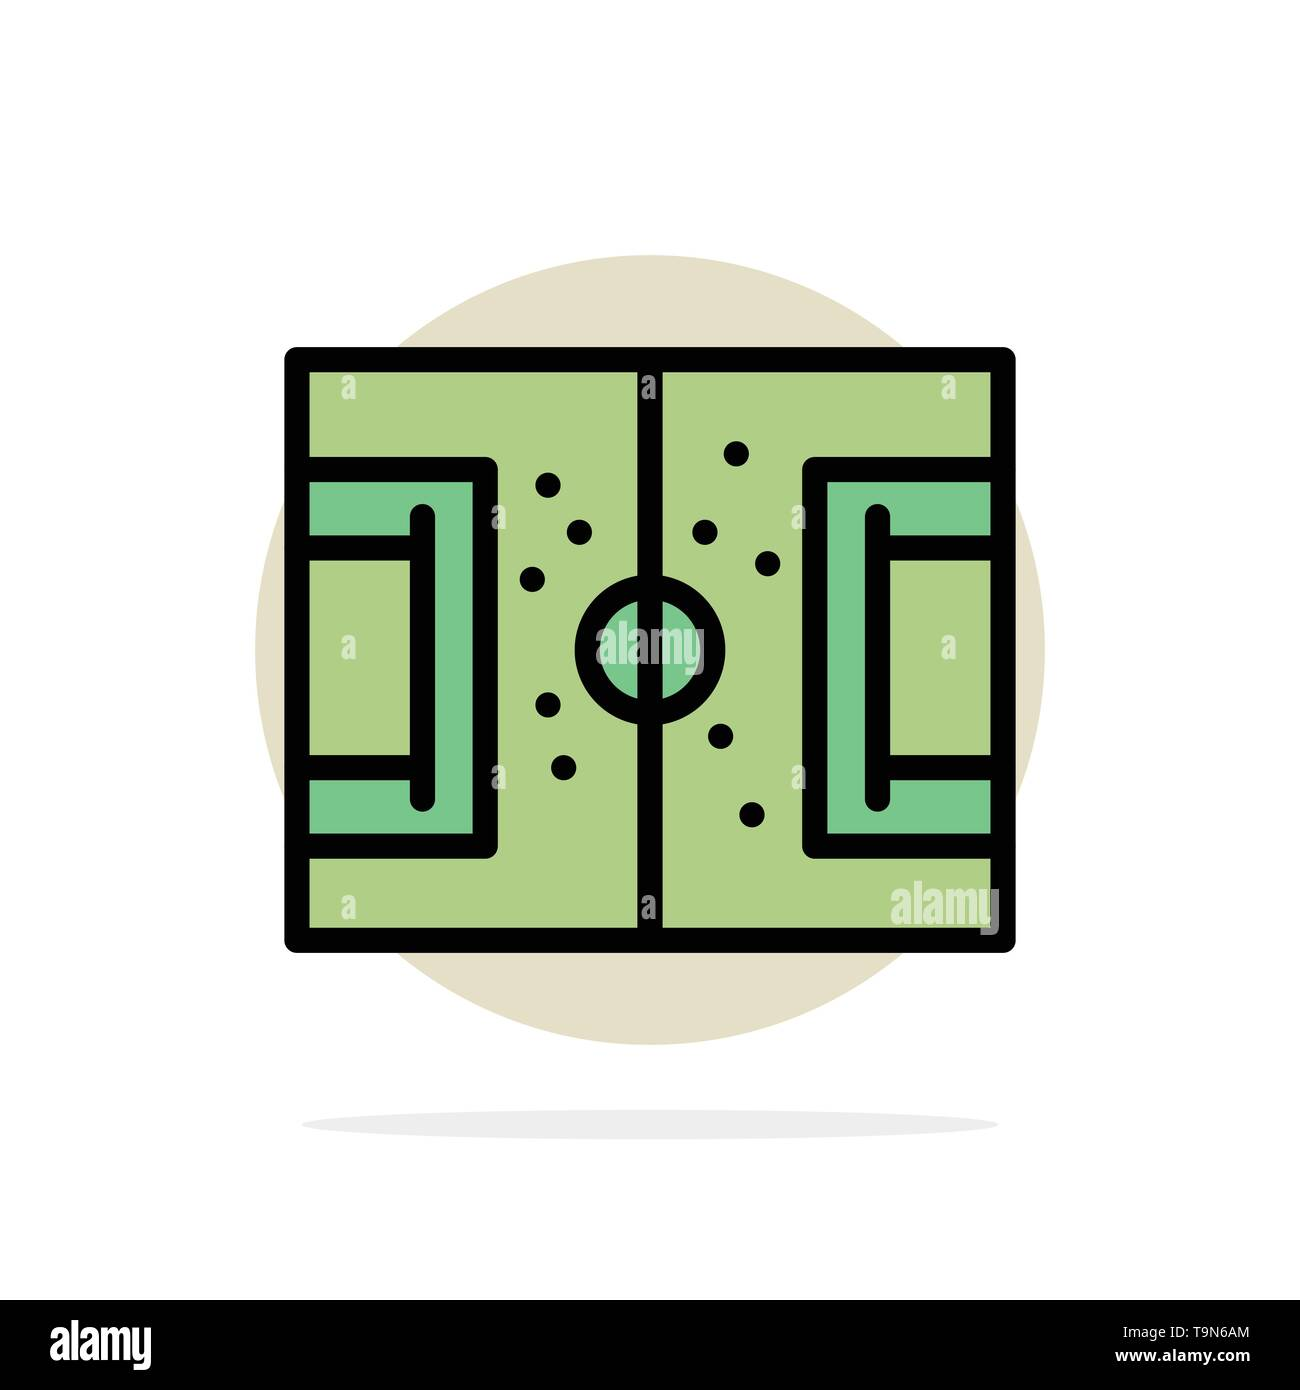 Field, Football, Game, Pitch, Soccer Abstract Circle Background Flat color Icon - Stock Image